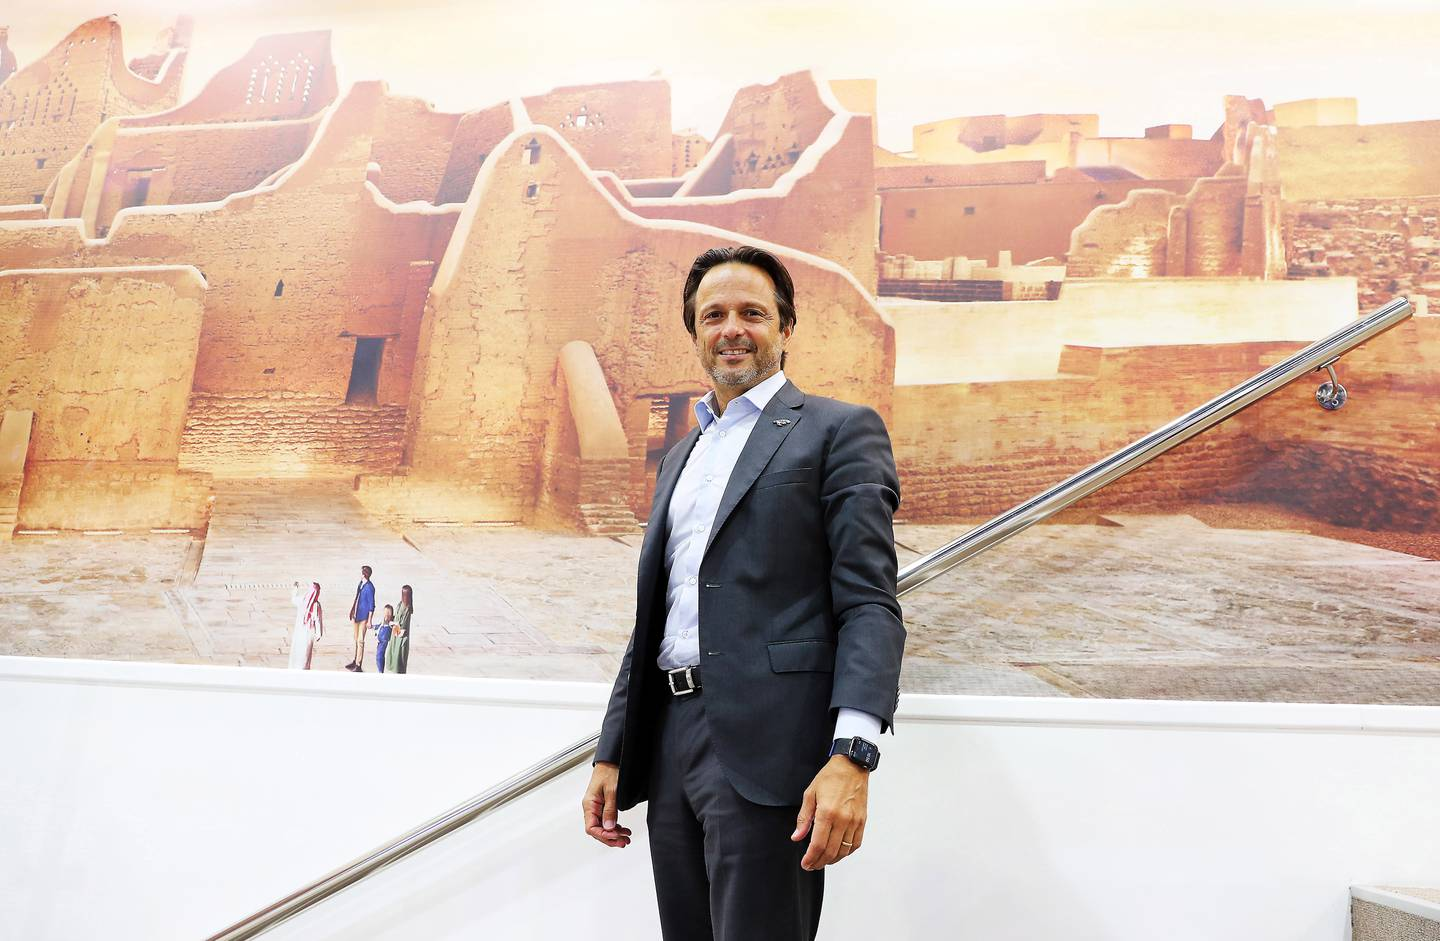 John Pagano, Chief Executive Officer for The Red Sea Development Company & AMAALA at the Saudi stand on the second day of the Arabian Travel Market held at Dubai World Trade Centre in Dubai on May 17,2021. Pawan Singh / The National. Story by Deena